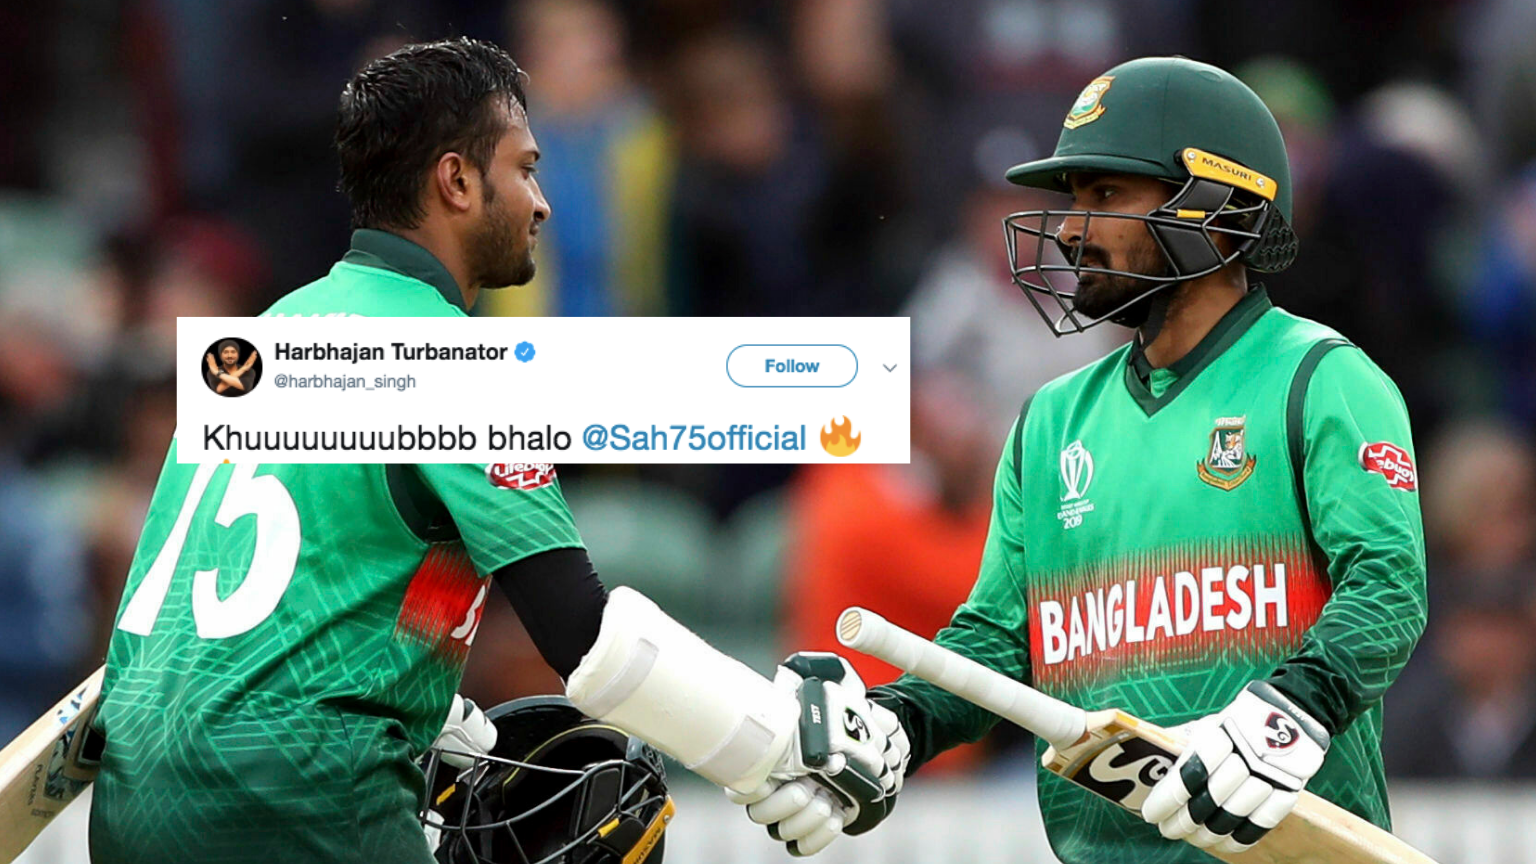 Twitter Hails Shakib After Bangladesh's Massive Win Over Windies